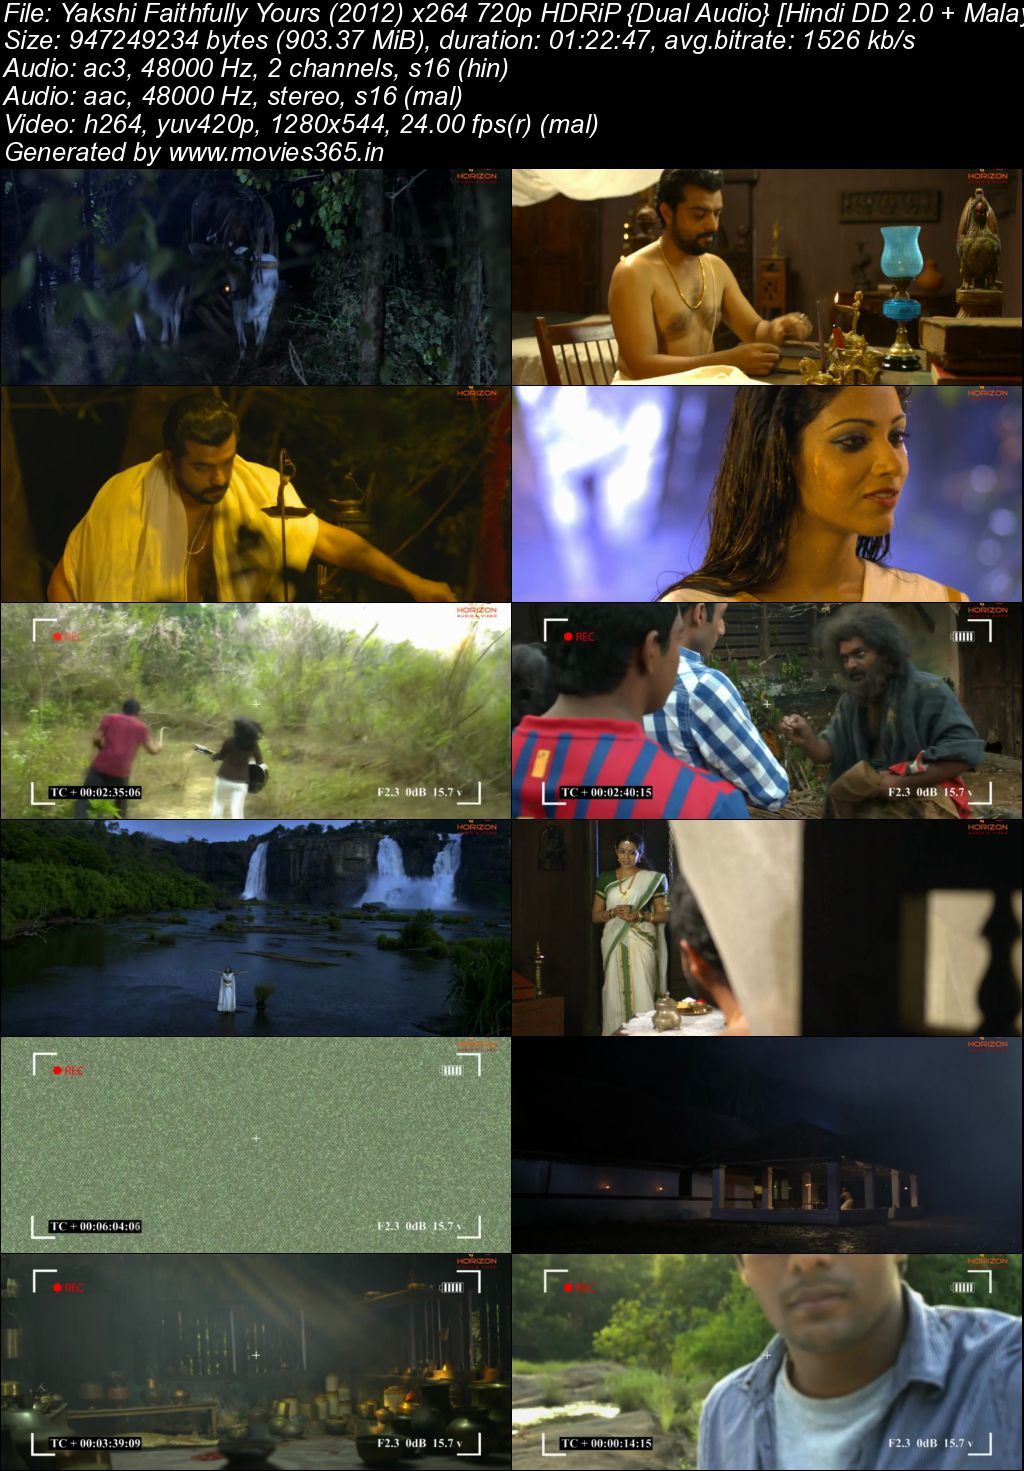 Single Resumable Download Link For Movie Yakshi Faithfully Yours (2012) Download And Watch Online For Free